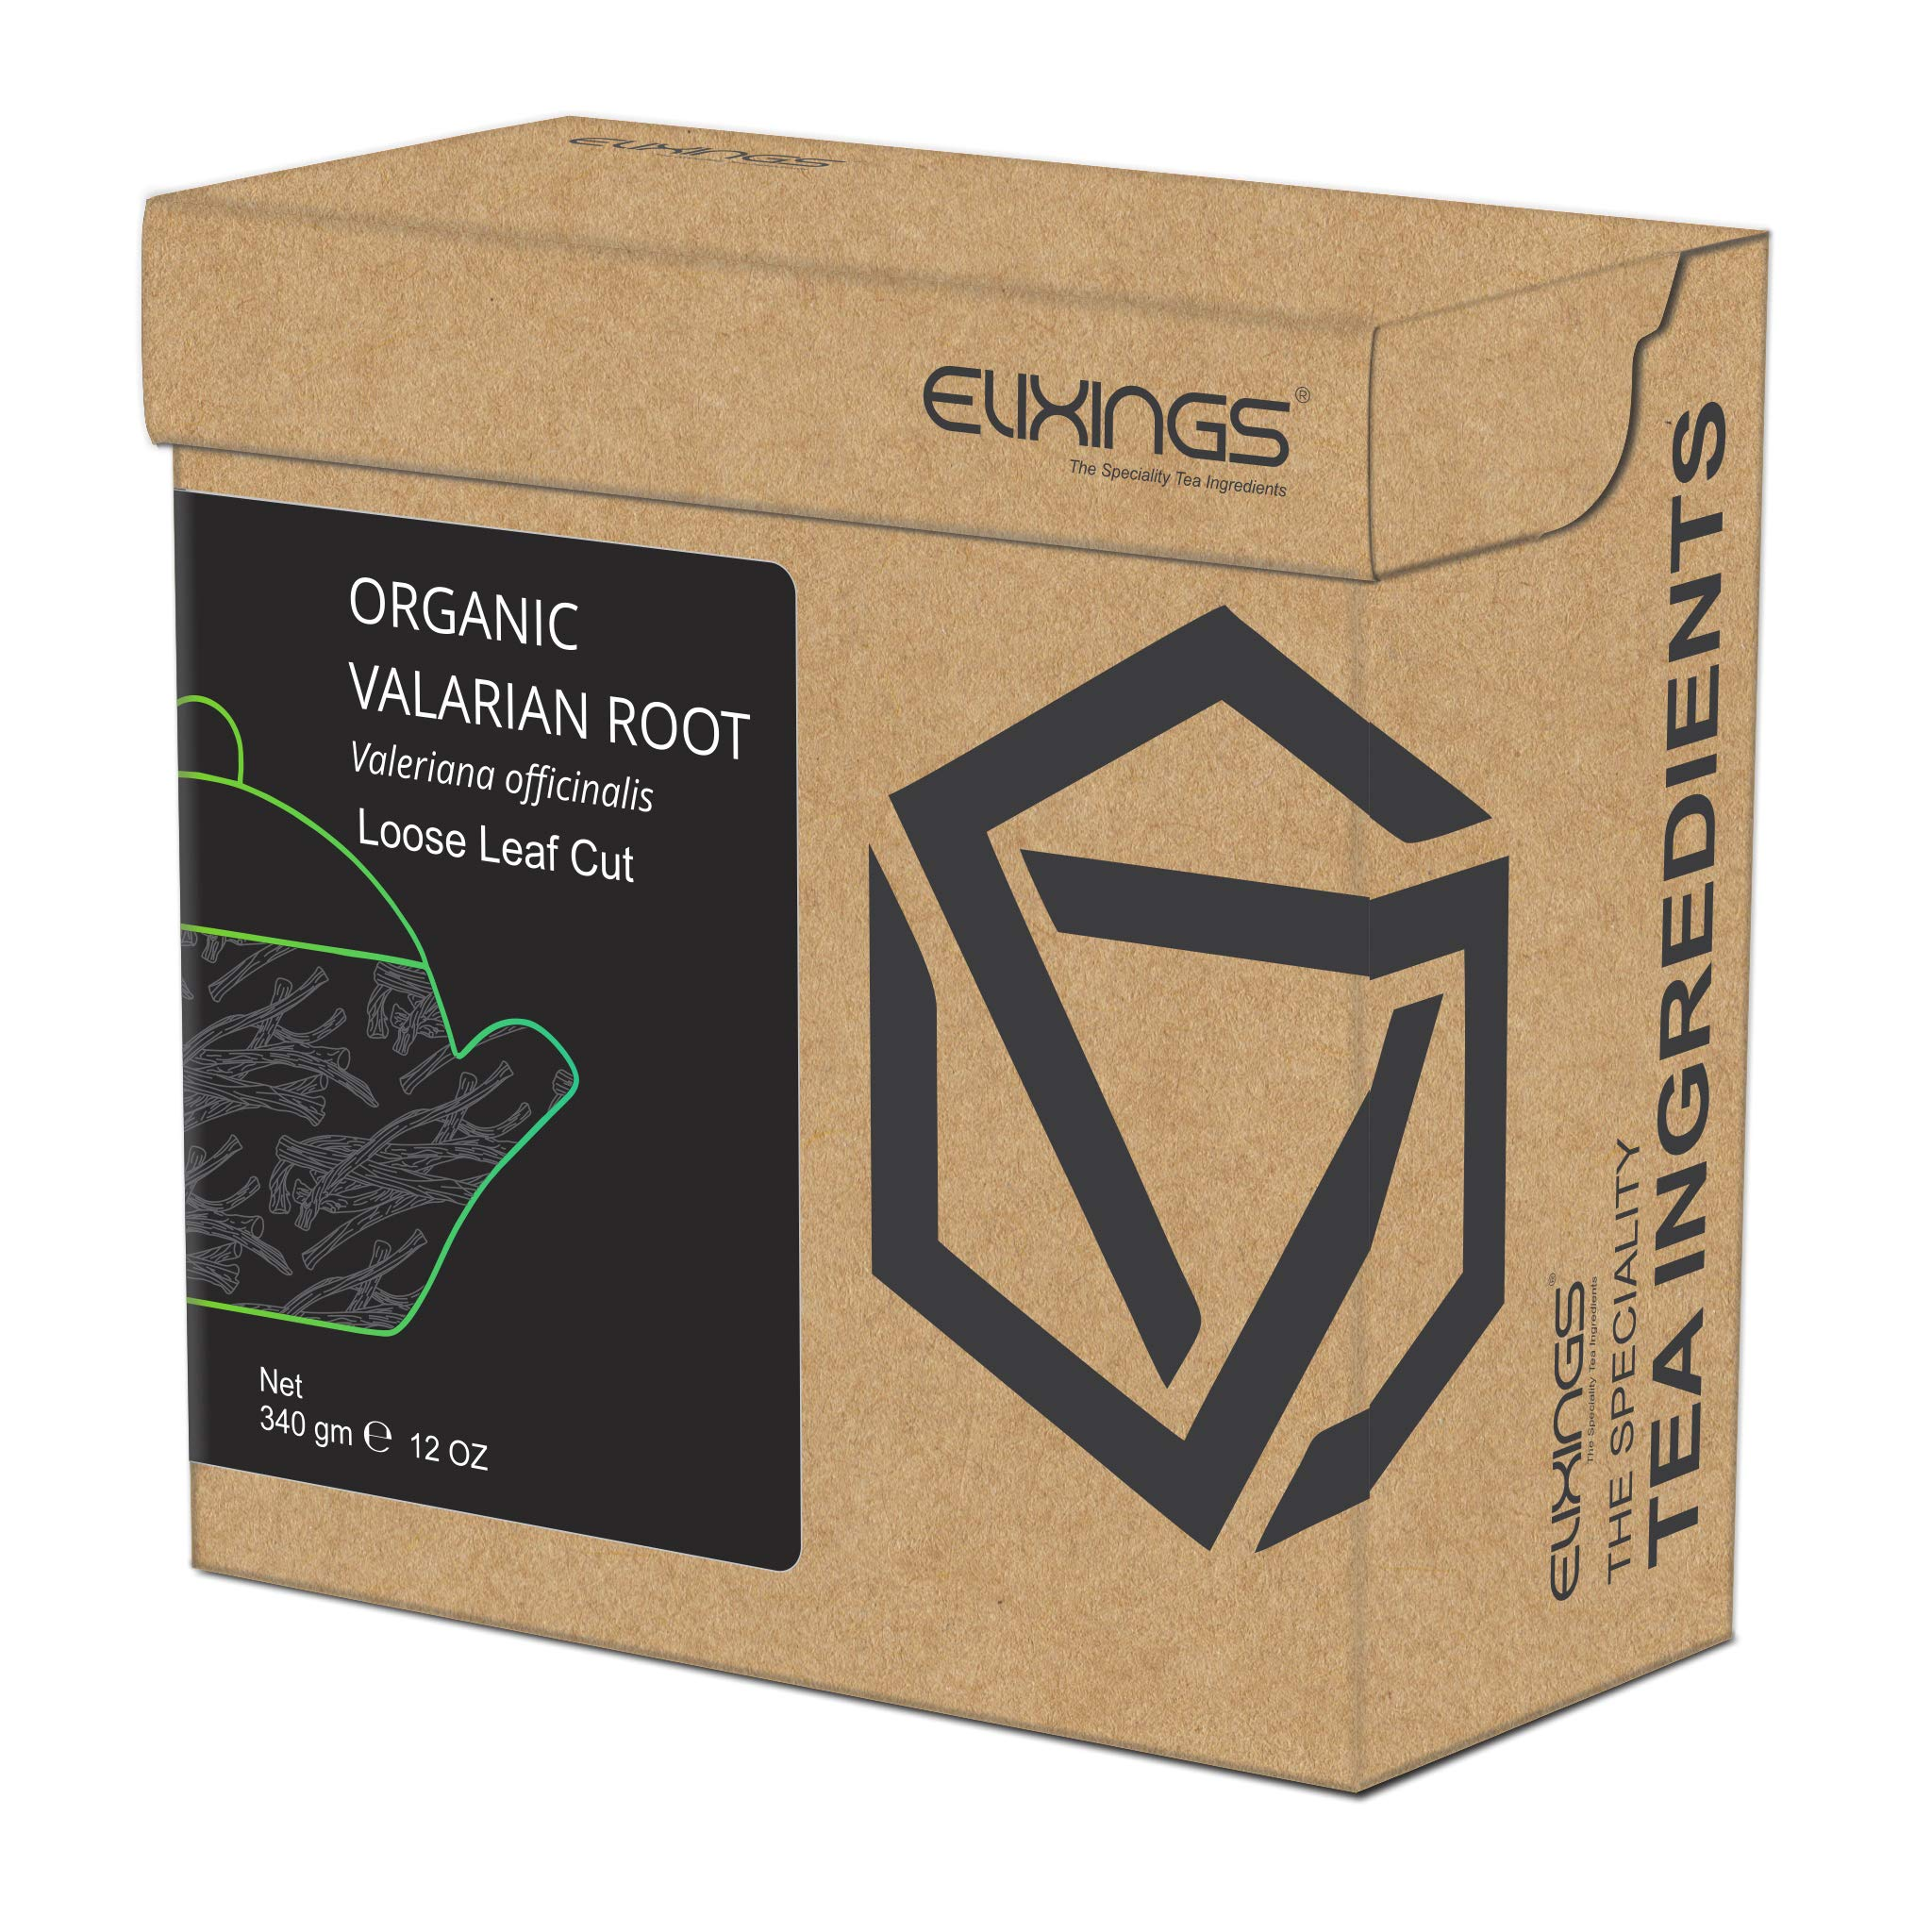 Elixings Organic Valarian Root Loose Leaf Cut 340gm (12 OZ) Valeriana officinalis, The Speciality Tea Ingredients